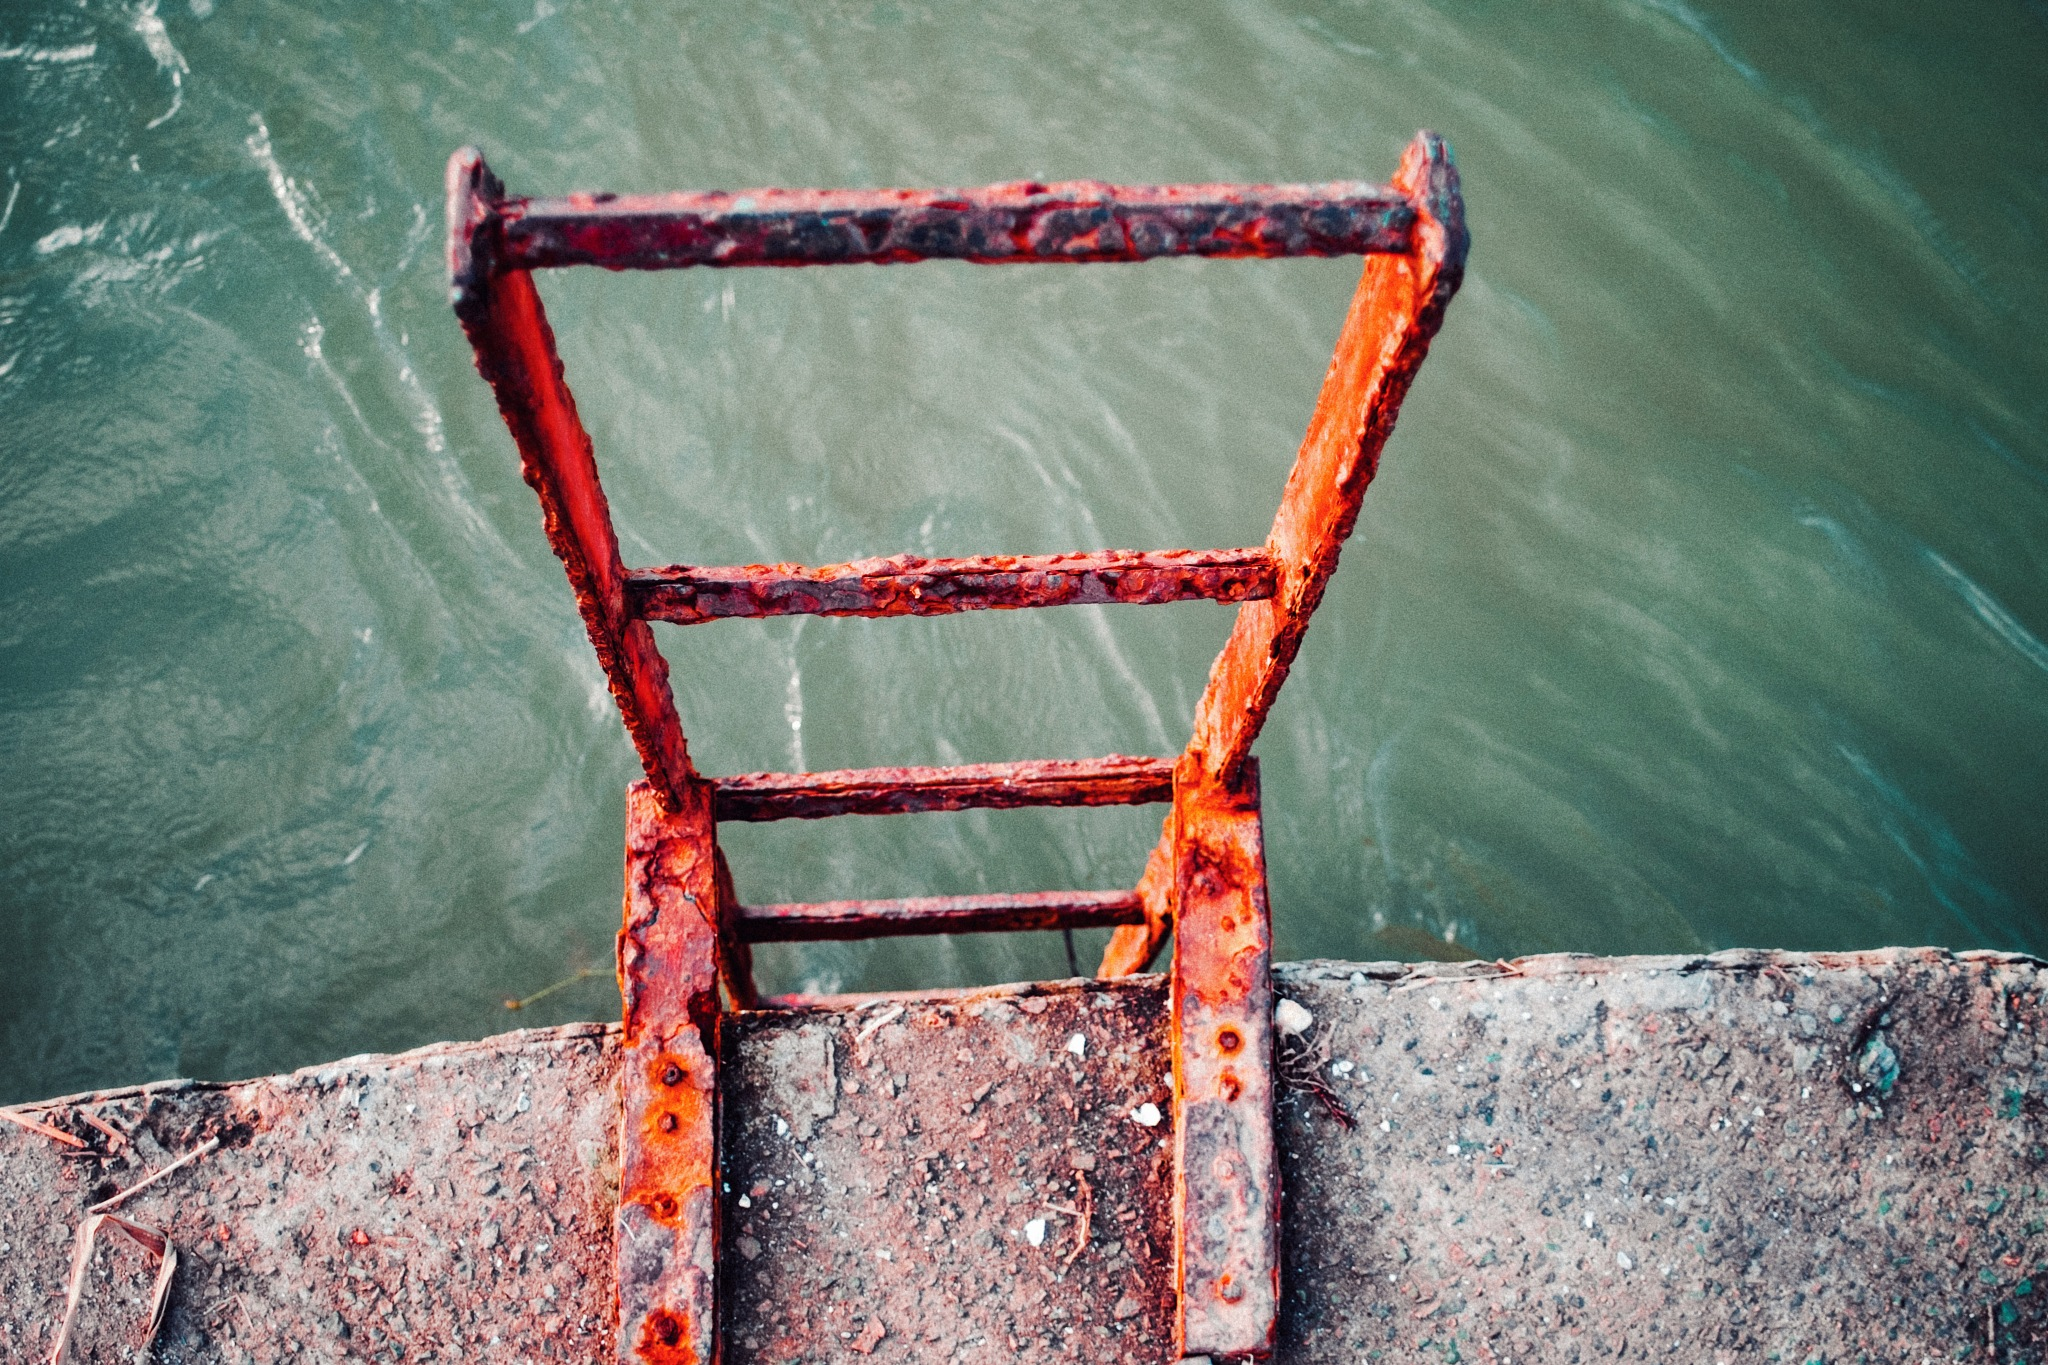 The rust ladder  by Moises Santana